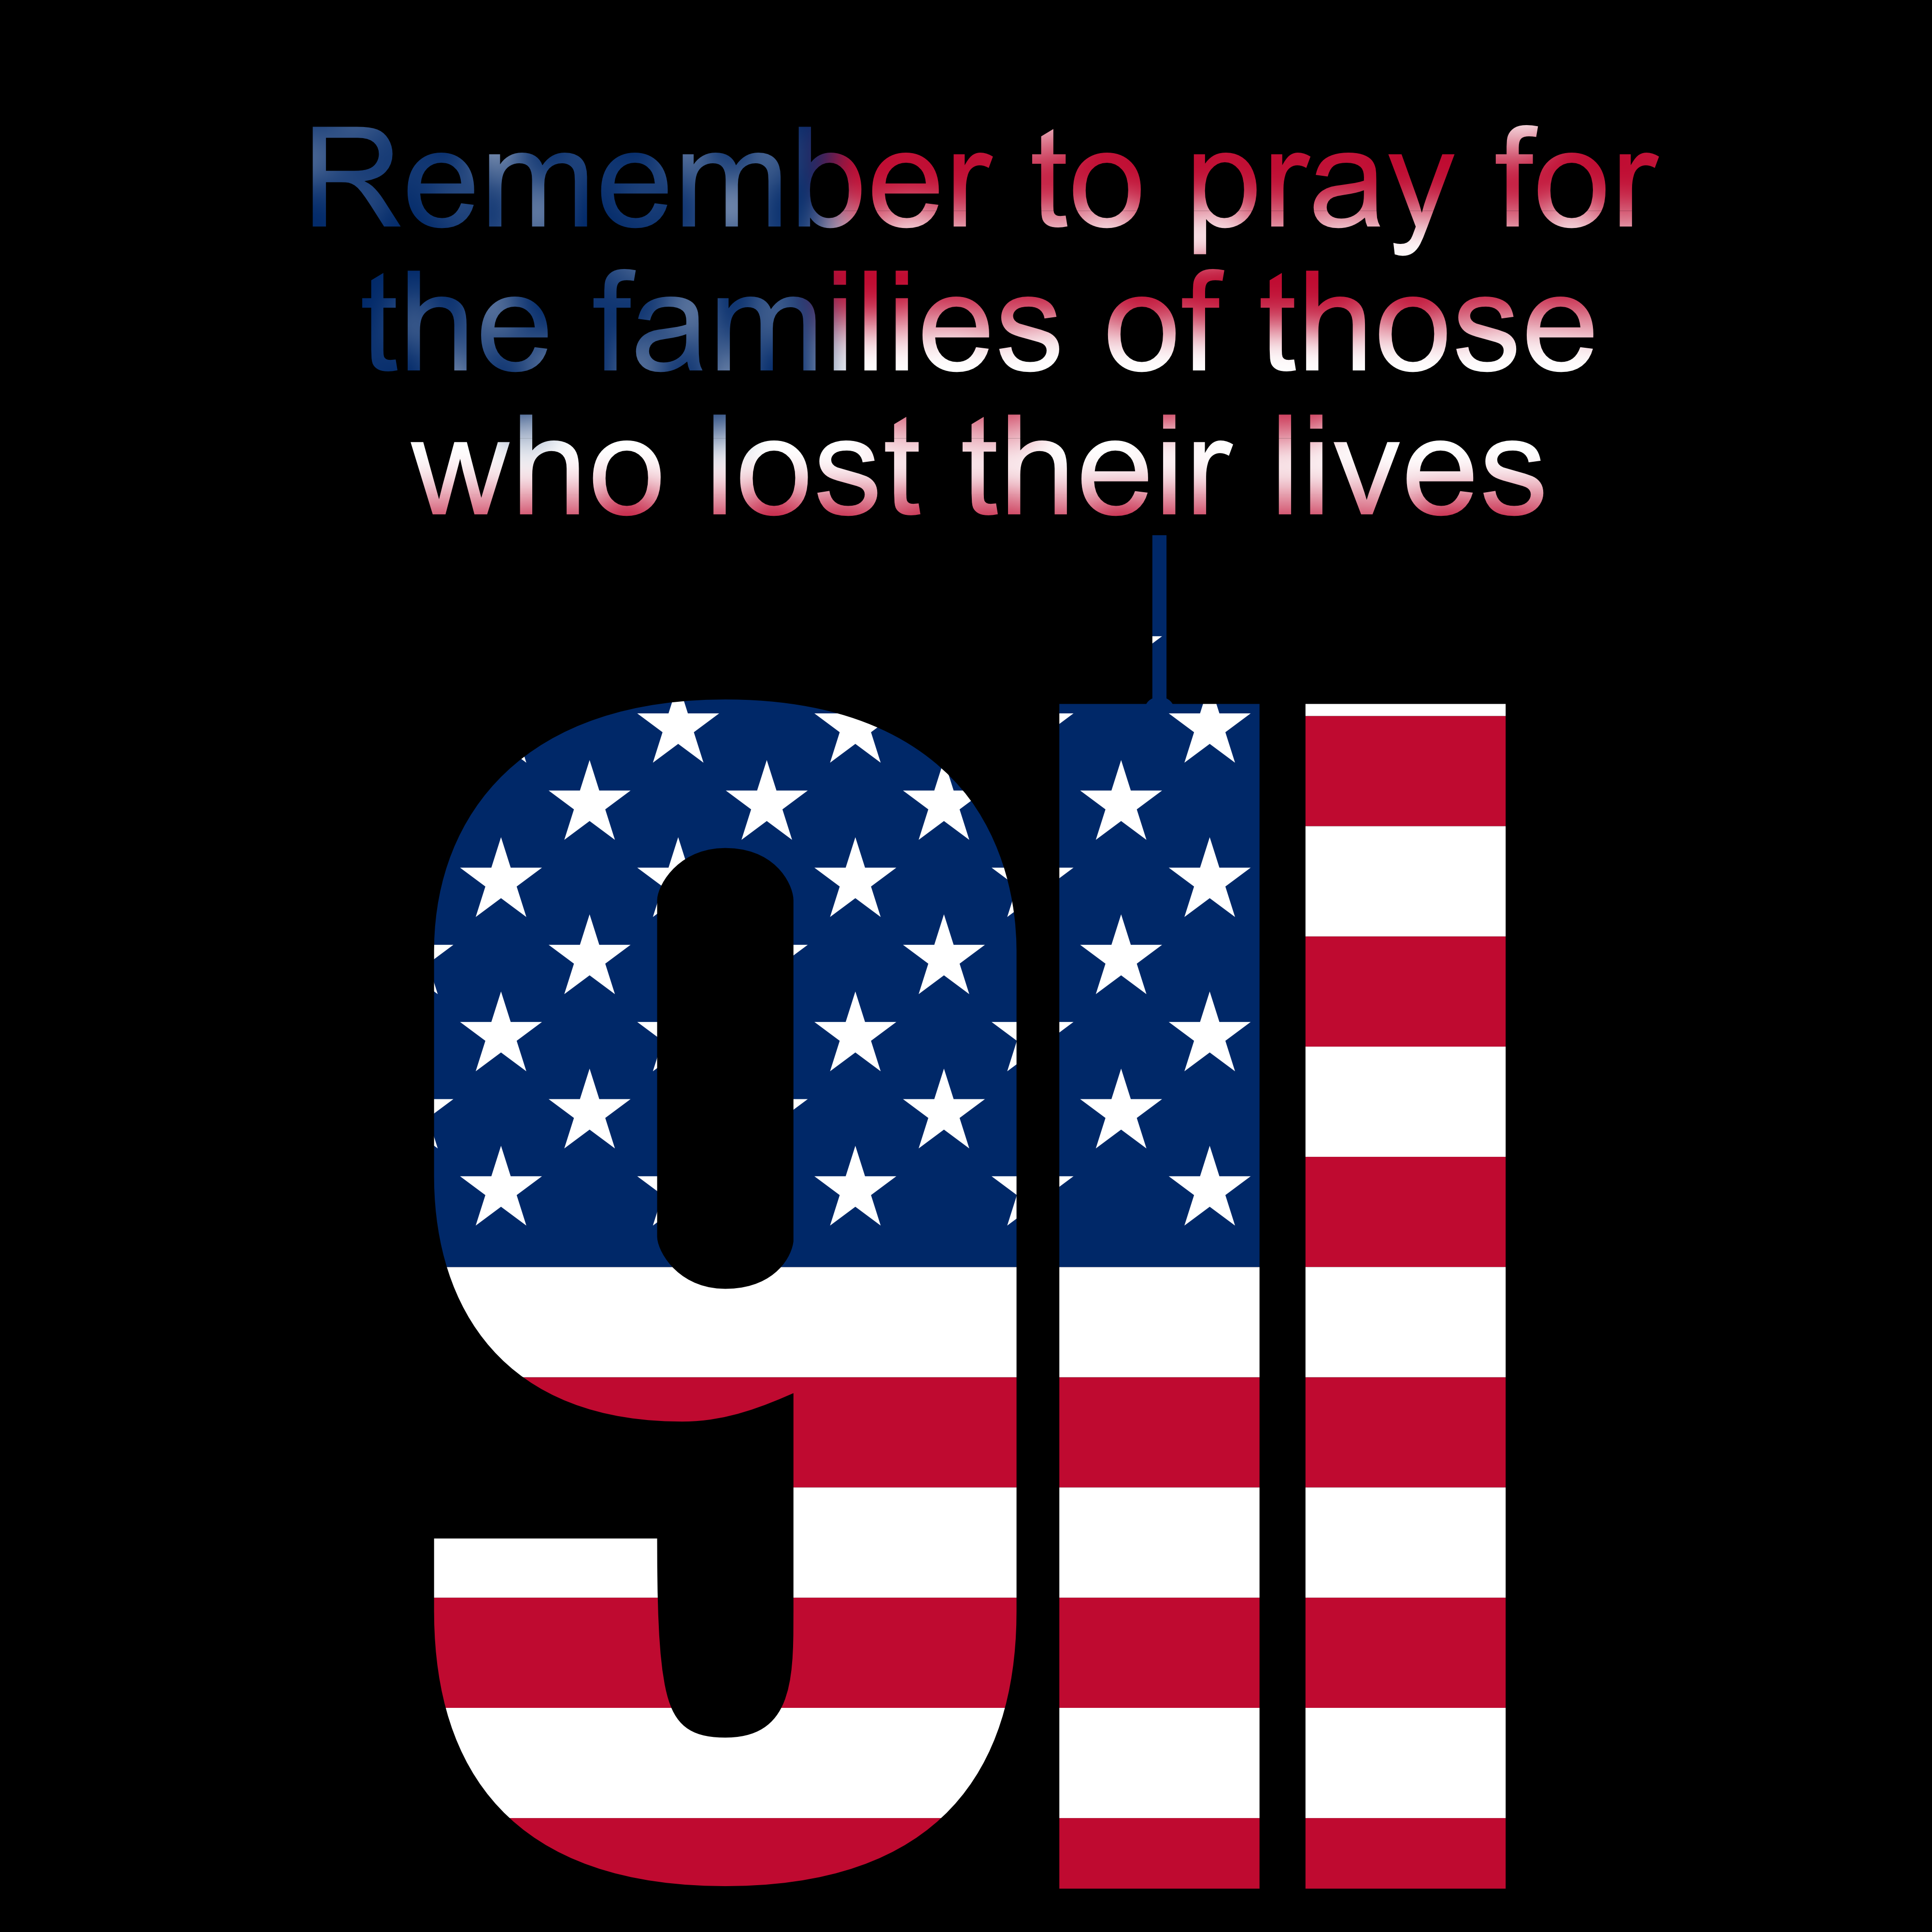 Reflecting on 9/11 and praying for their families